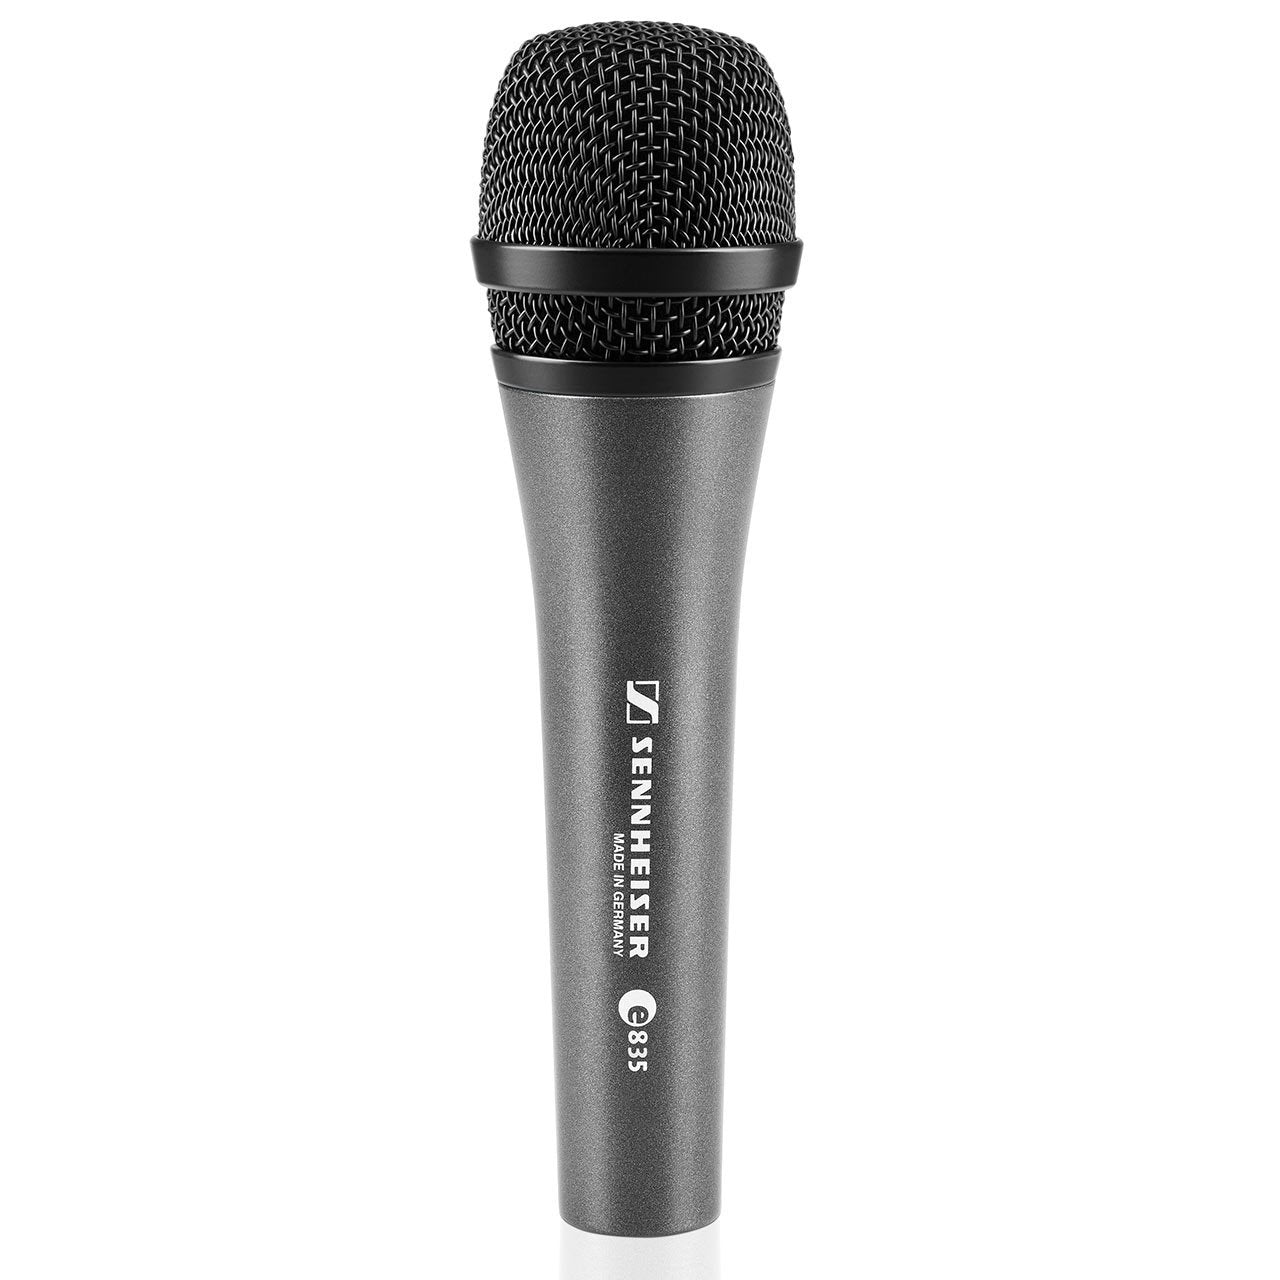 Sennheiser e 835 Dynamic Vocal Microphone